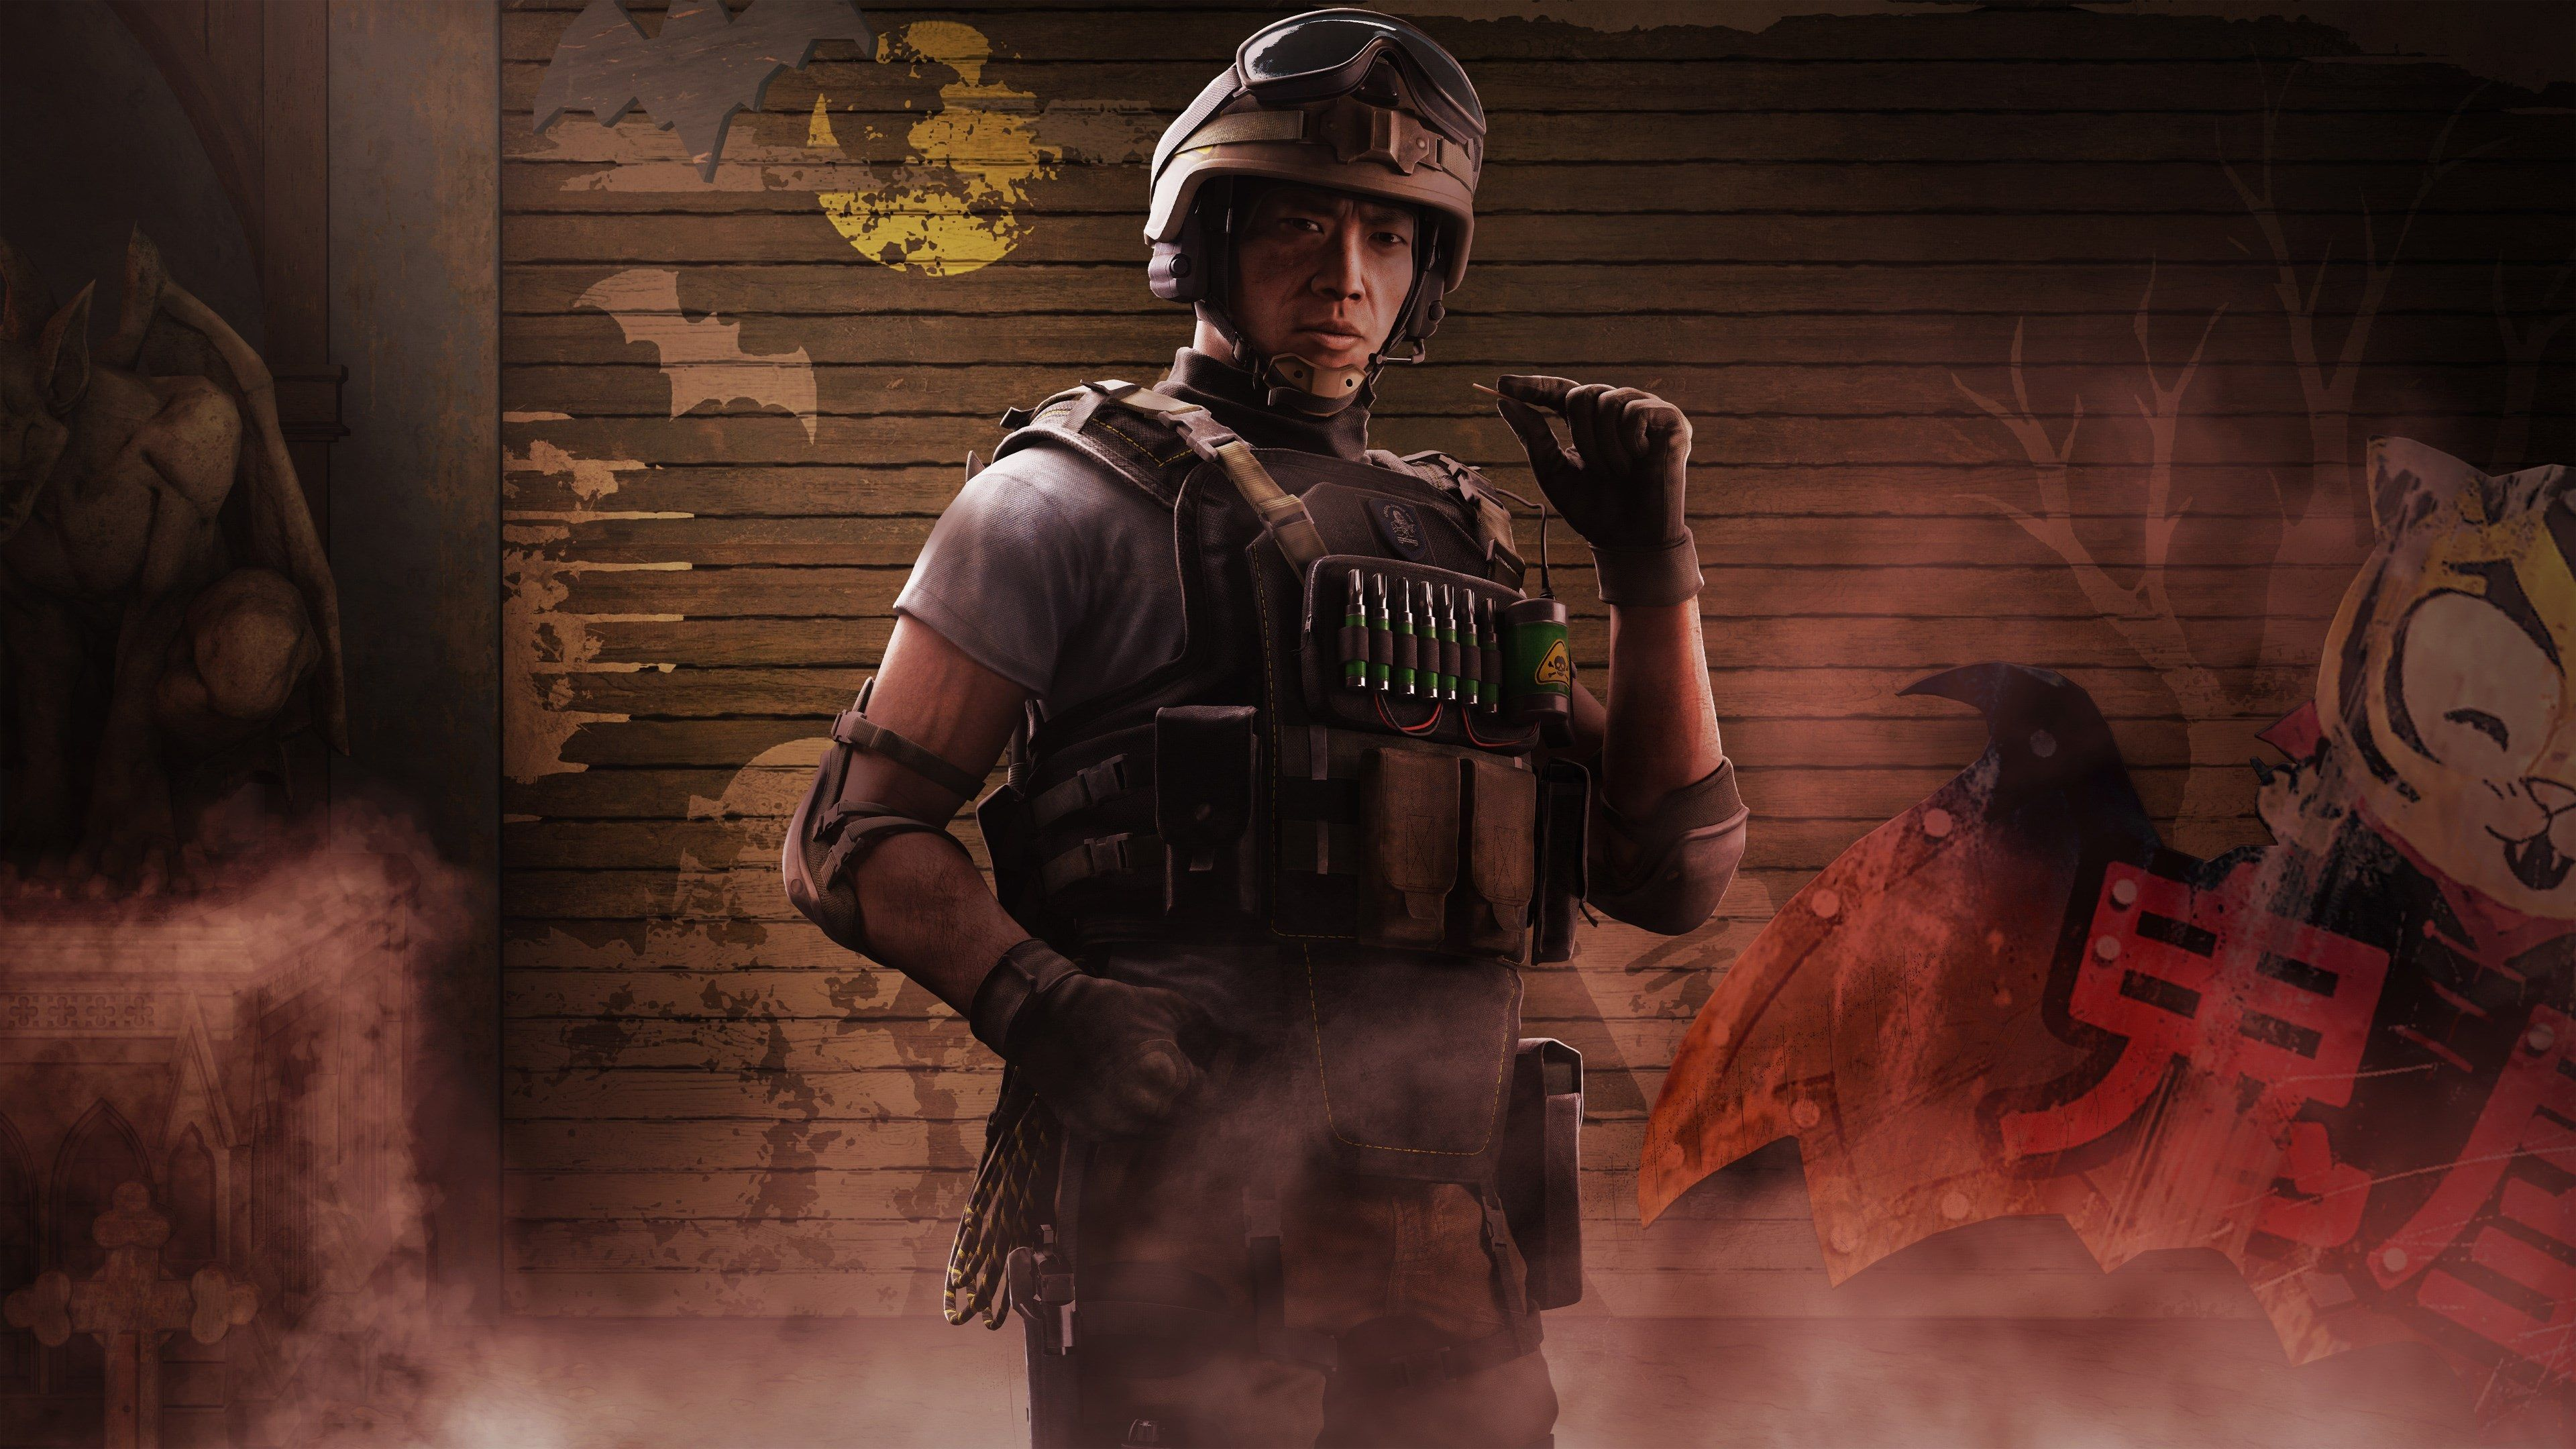 3840x2160 Lesion Operator 4k Background Hd Desktop In 2020 Tom Clancy S Rainbow Six Ps Plus Gaming Wallpapers